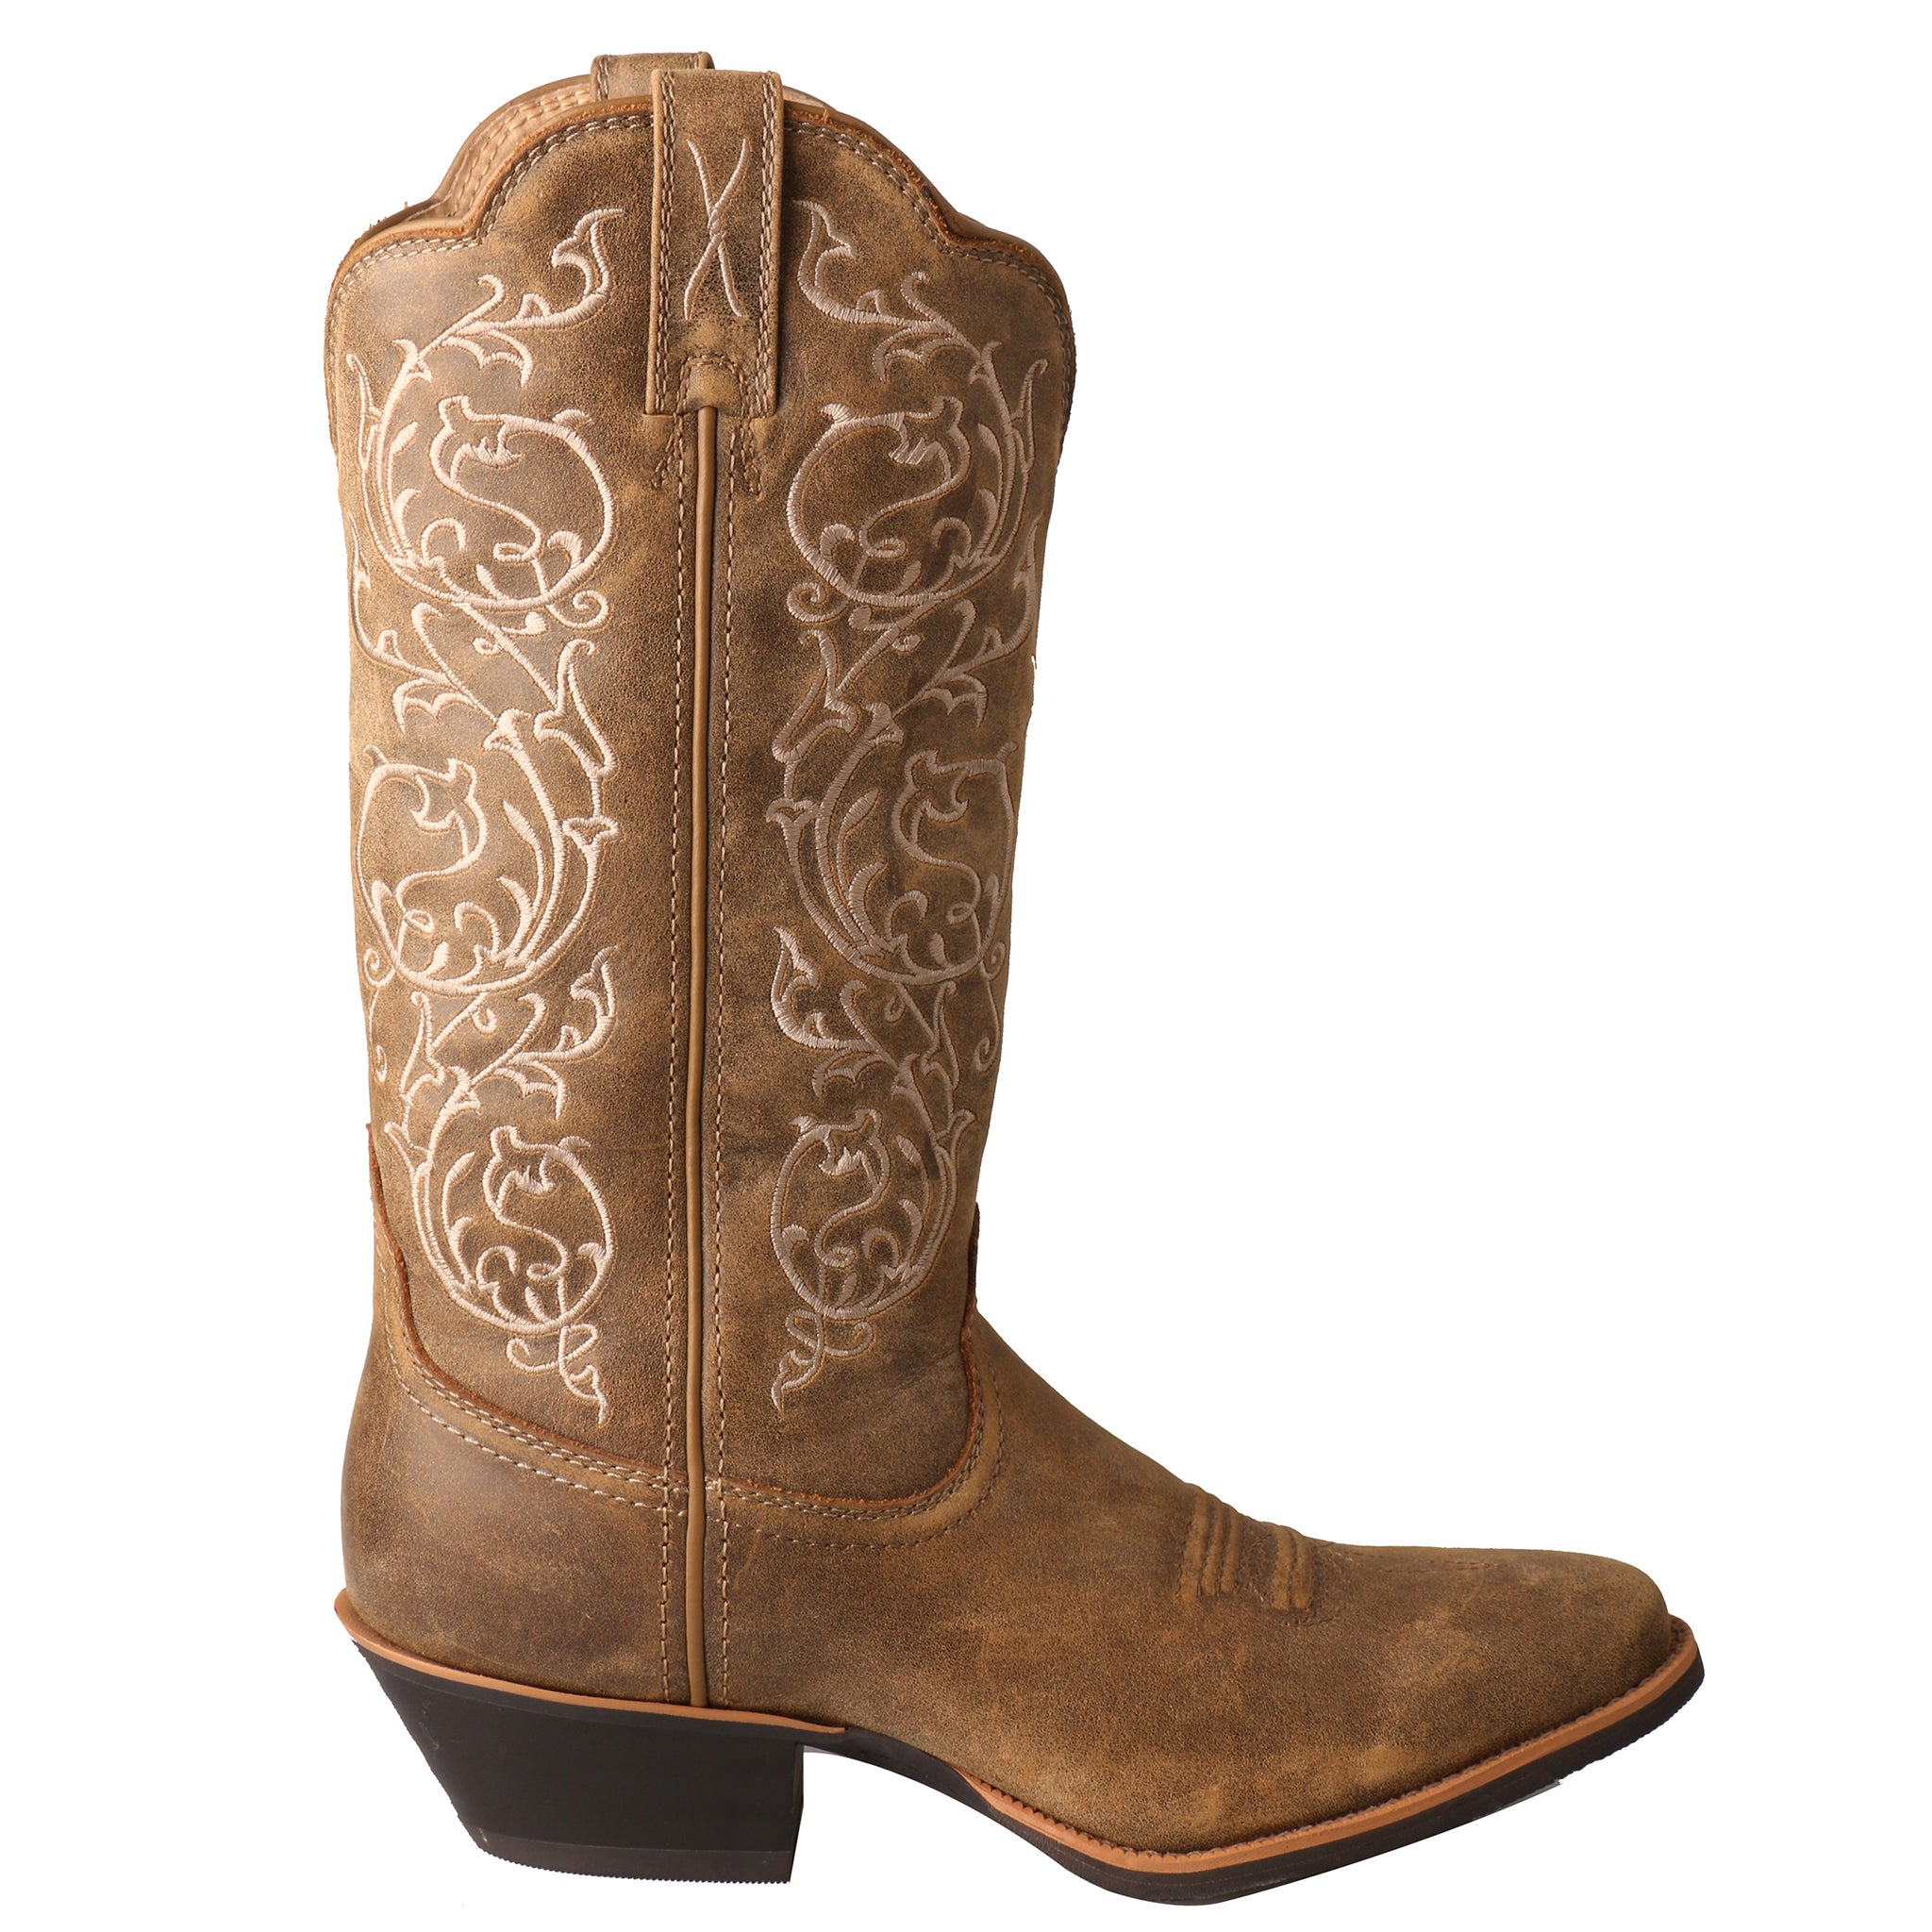 Picture of the inner side of the Women's Twisted X Western Boot WWT0025